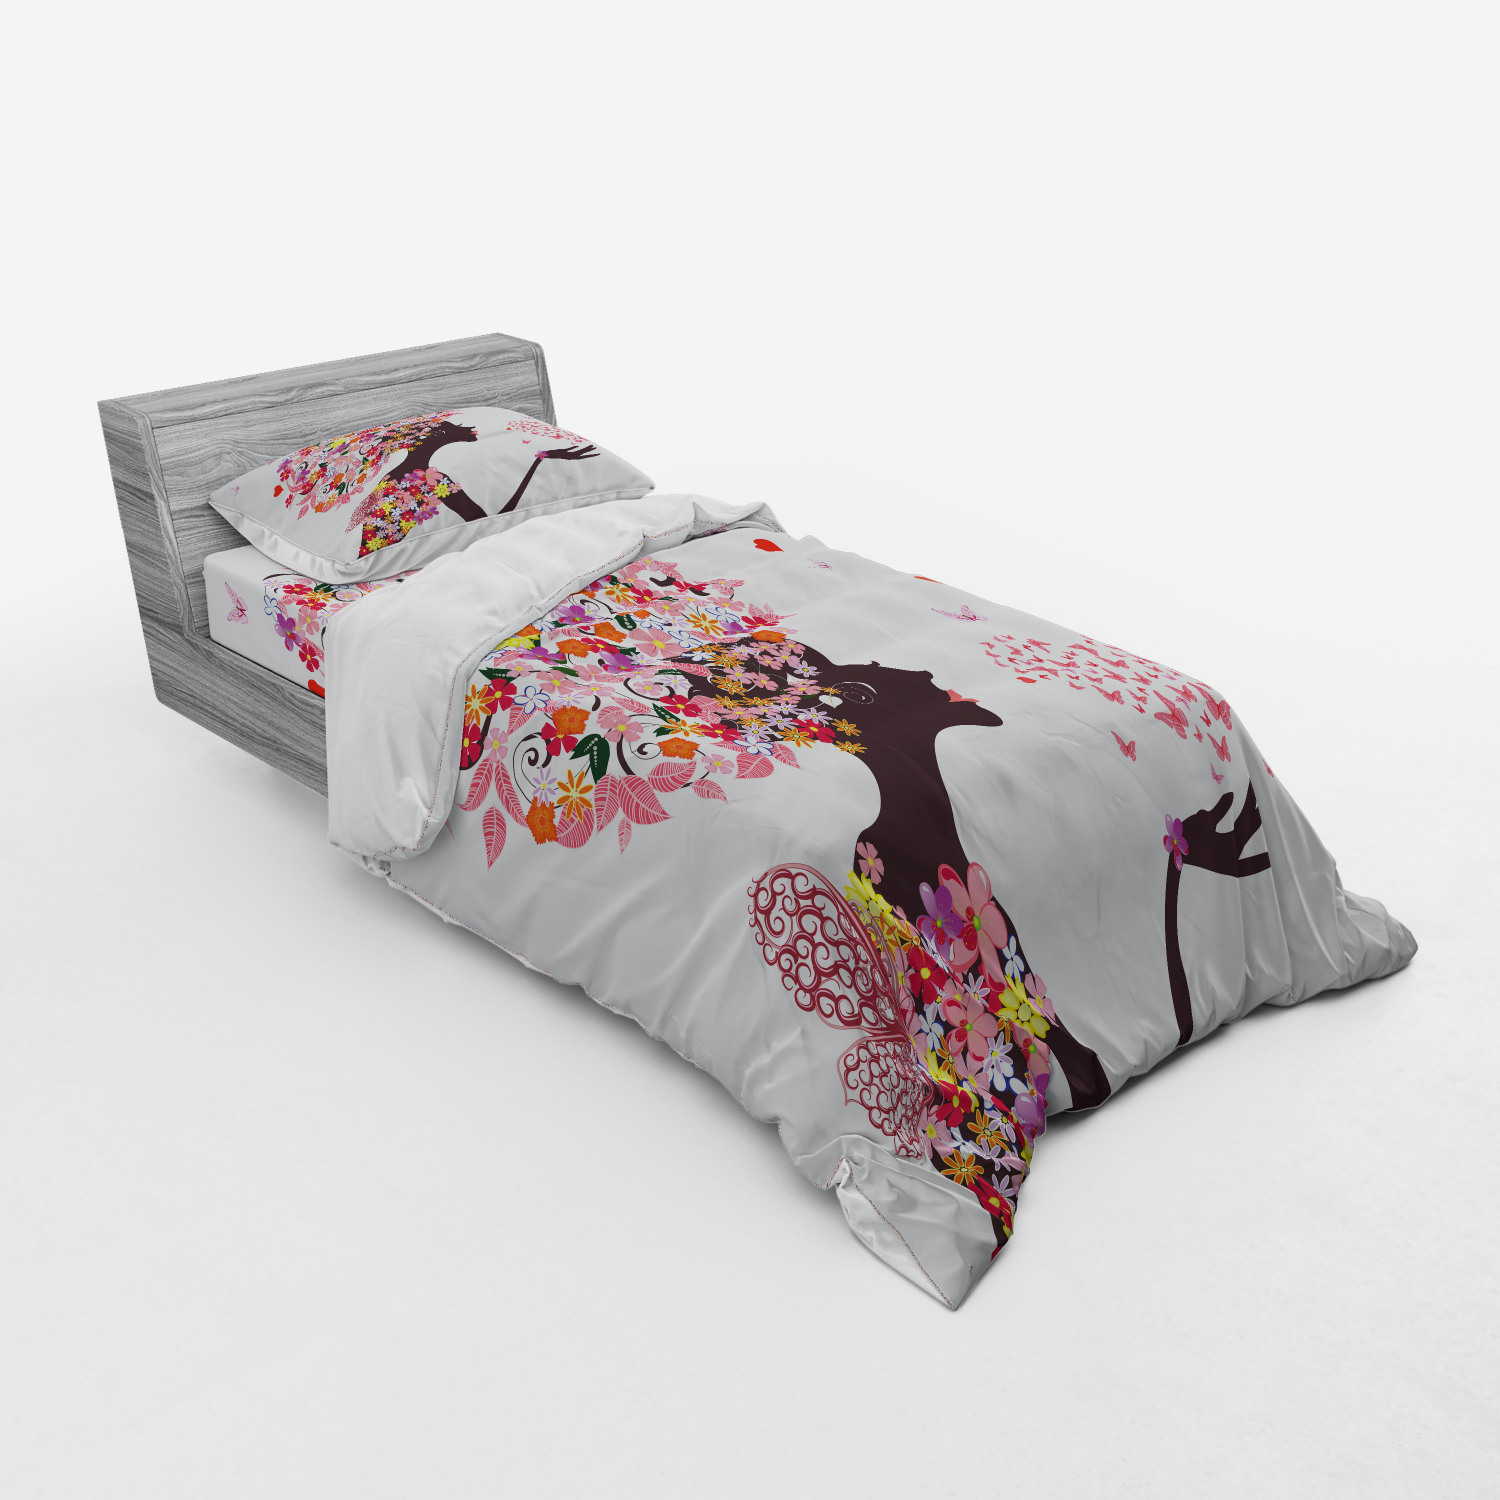 thumbnail 25 - Ambesonne Summer Bedding Set Duvet Cover Sham Fitted Sheet in 3 Sizes